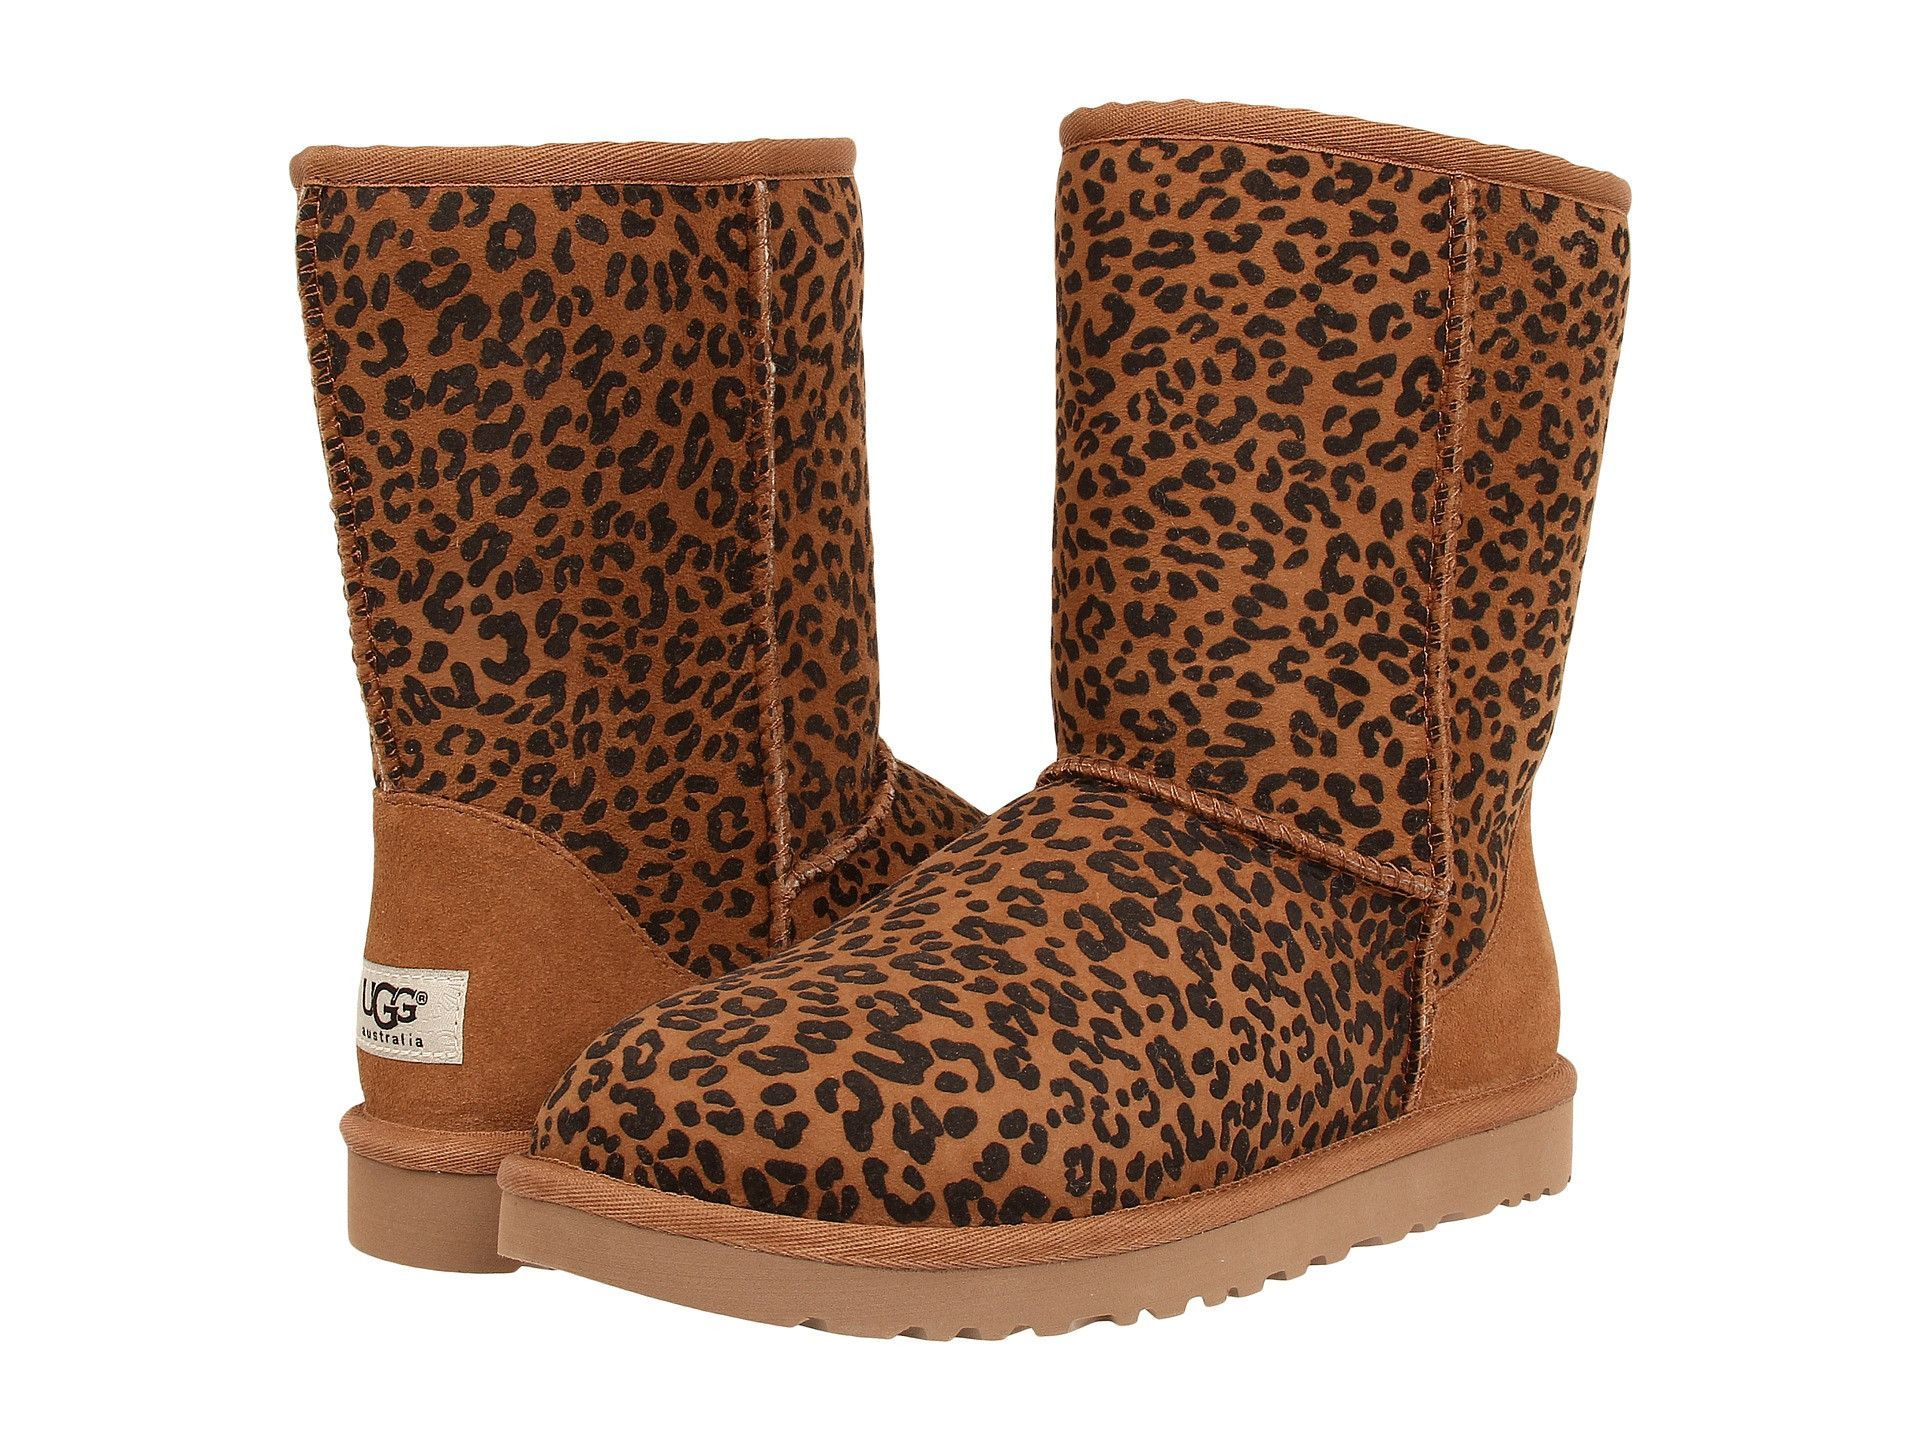 Classic Short Ugg Rosette Leopard BootsUgss Print EDH2IW9